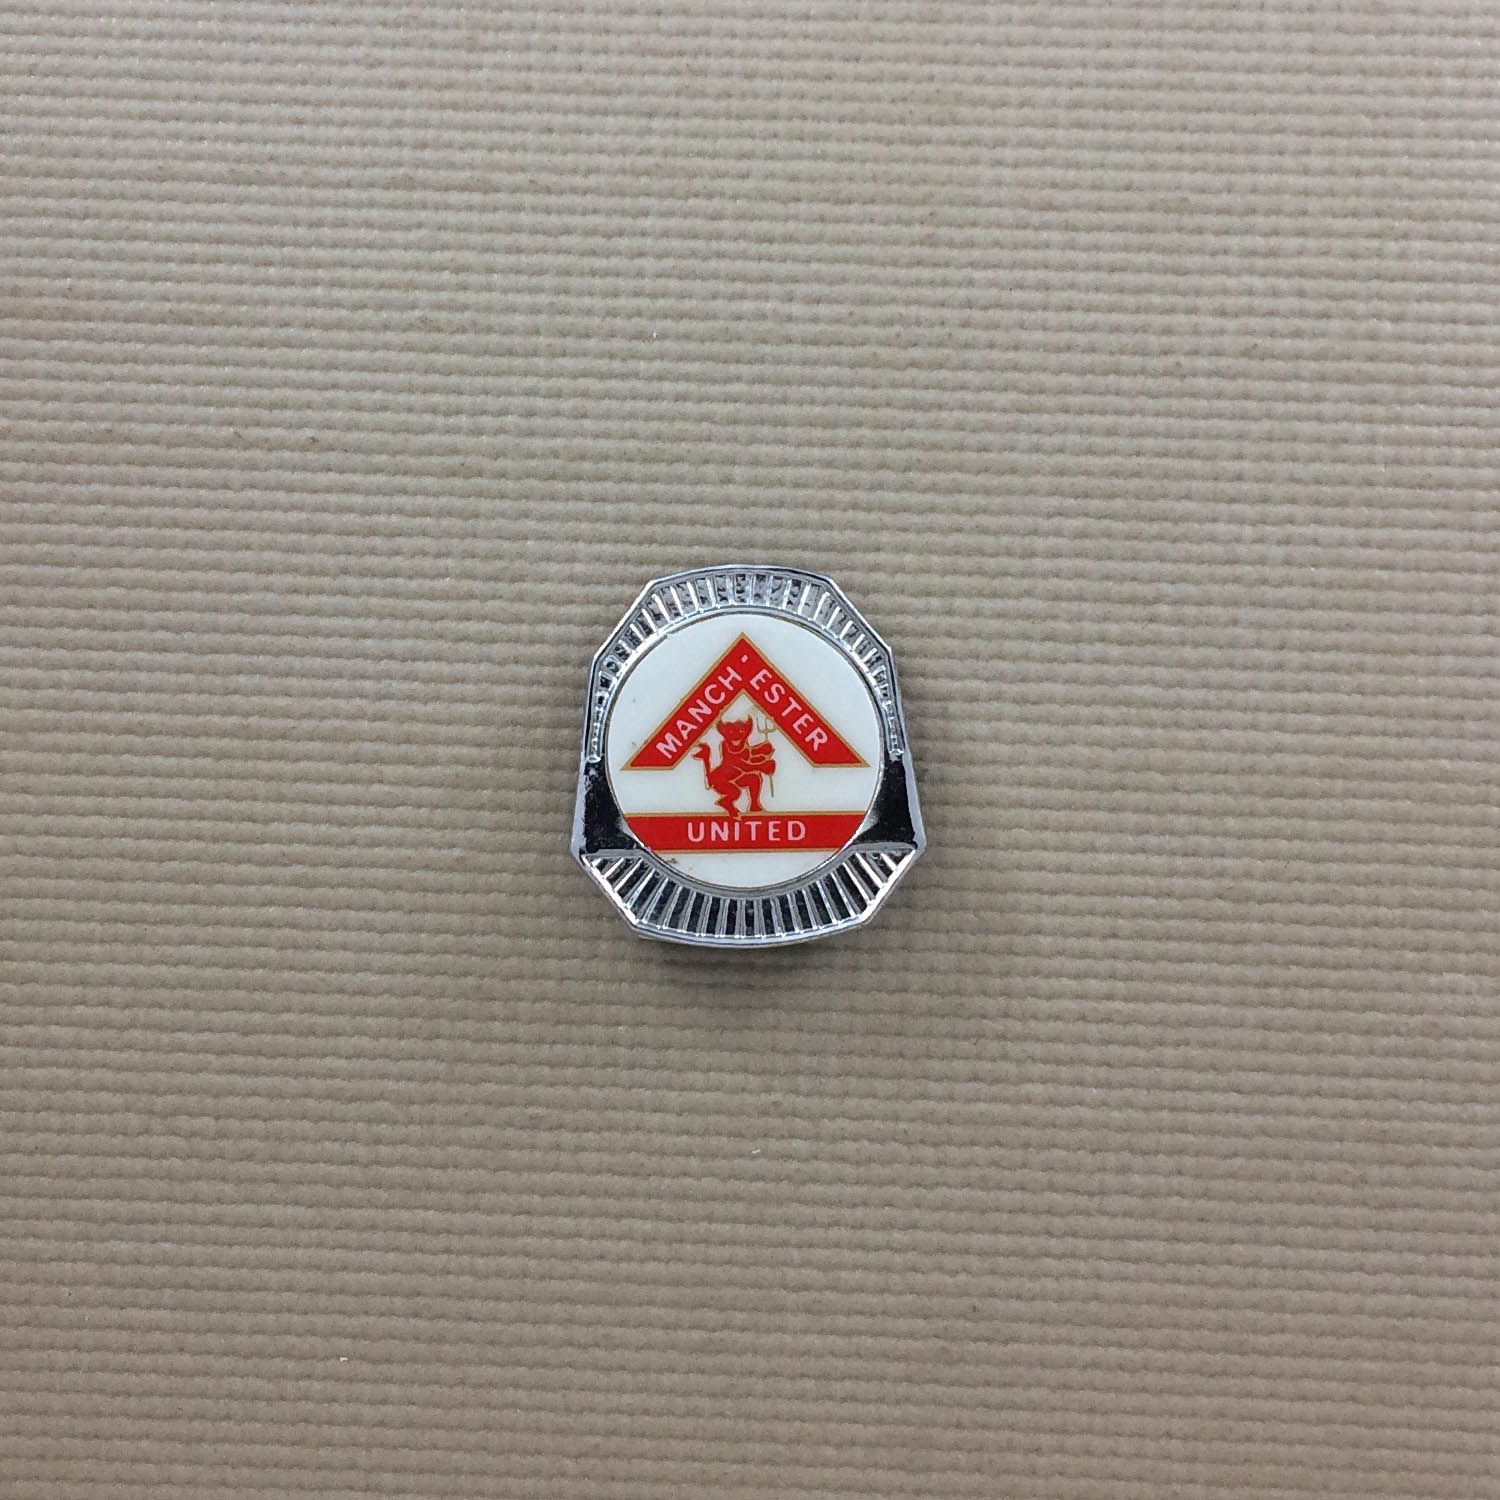 Manchester United Collectors Pin